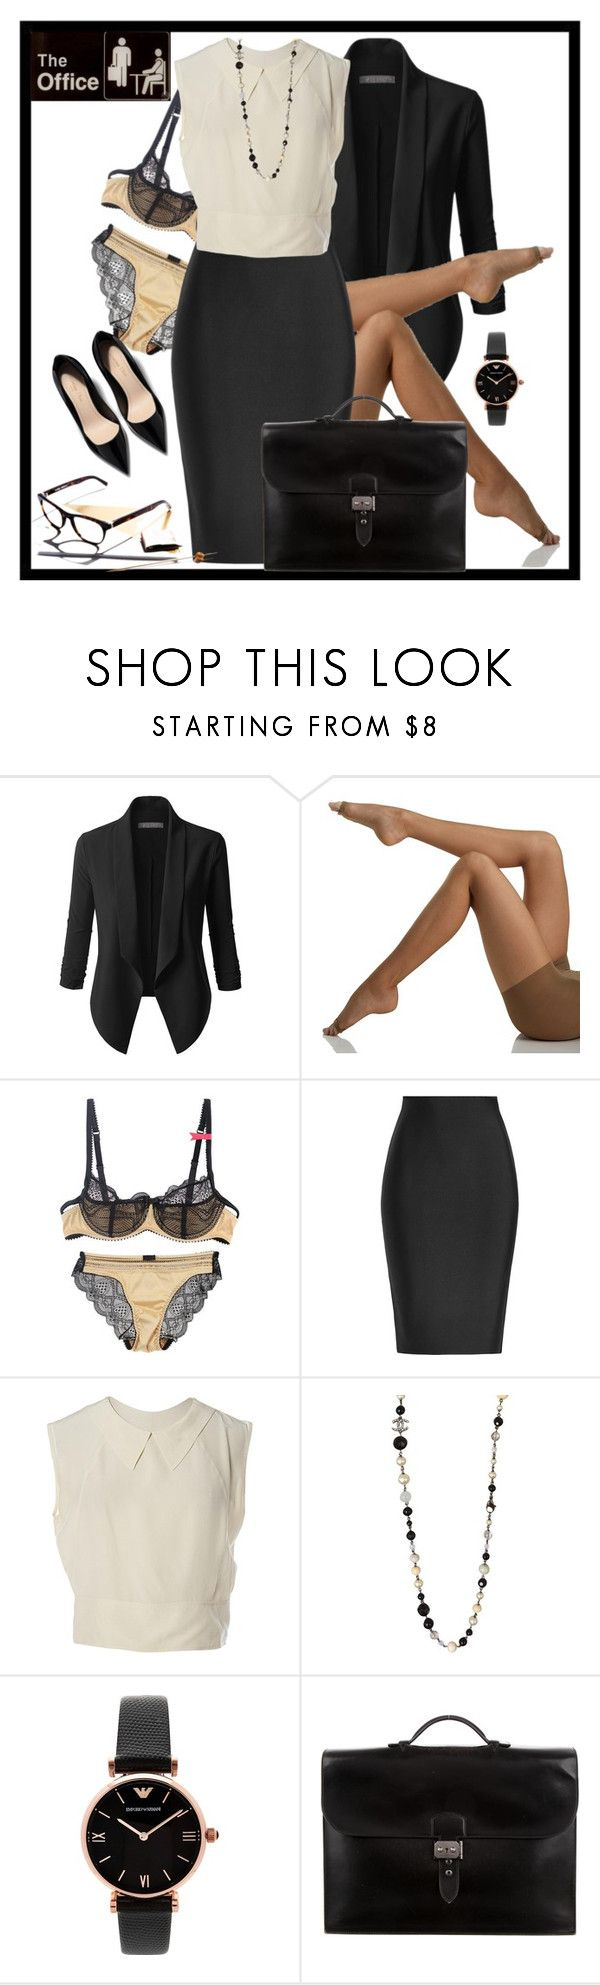 """""""Office look!"""" by wat2wear-849 ❤ liked on Polyvore featuring LE3NO, Berkshire, Roland Mouret, Chanel, Emporio Armani and Hermès"""